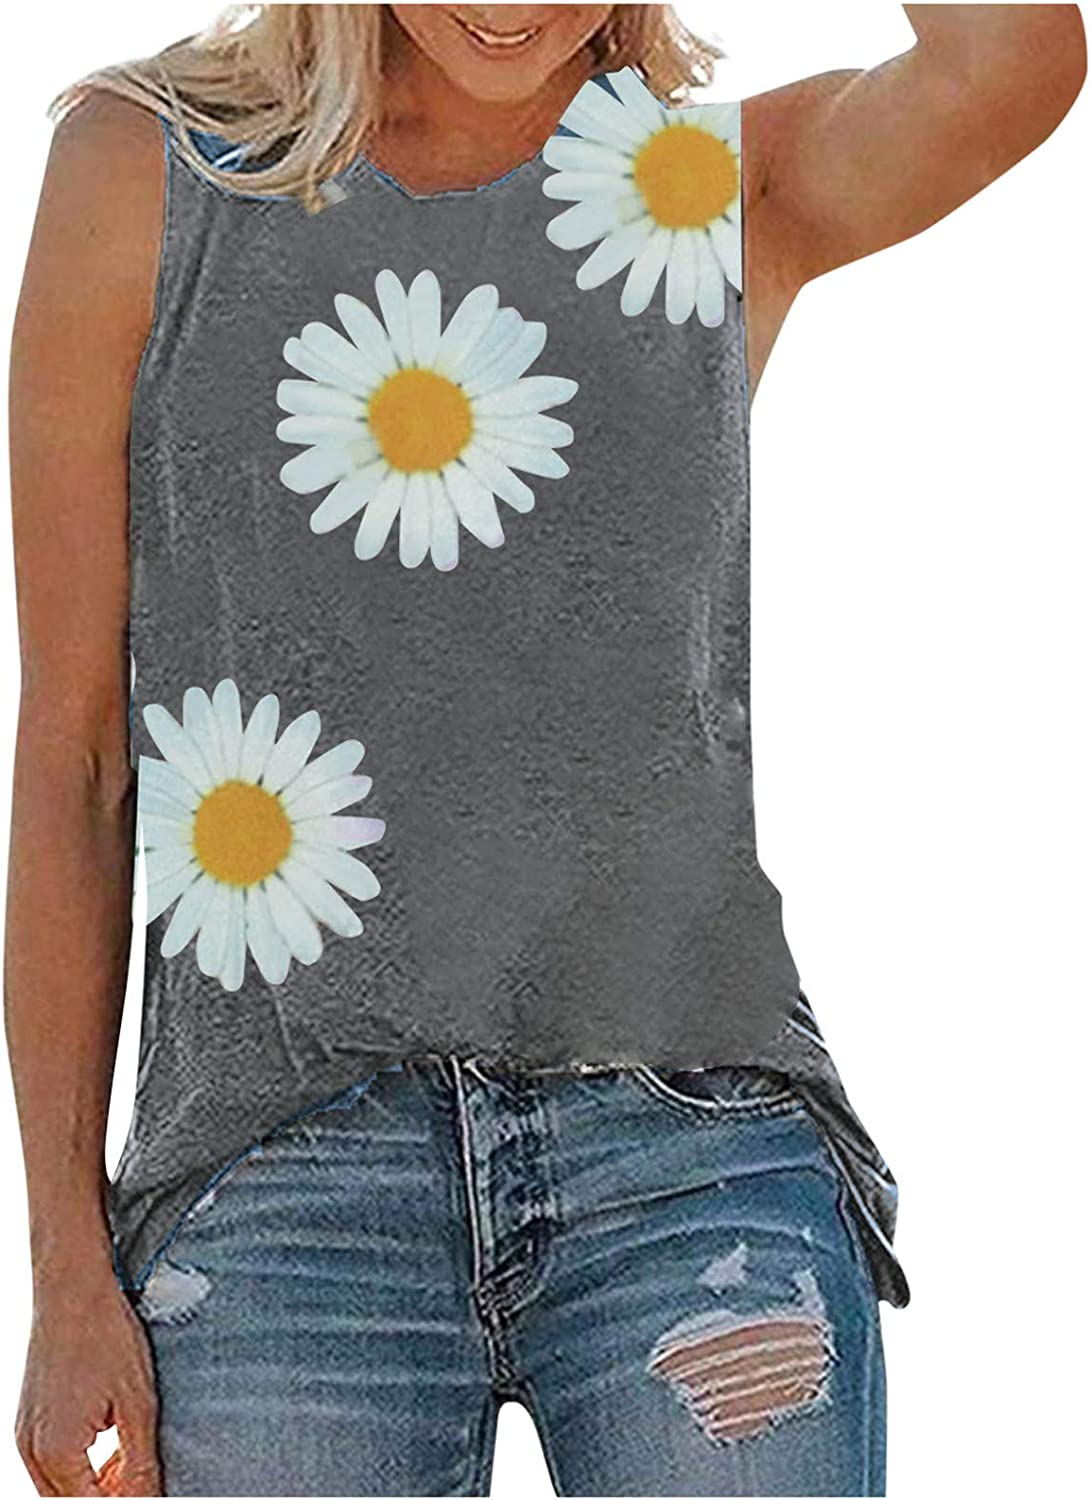 Crop Tops for Women Sexy Women Shirts Teen Girls Sleevelss Casual Summer Stripe Lace Up Cami Tank Tops Vest Blouse Gray